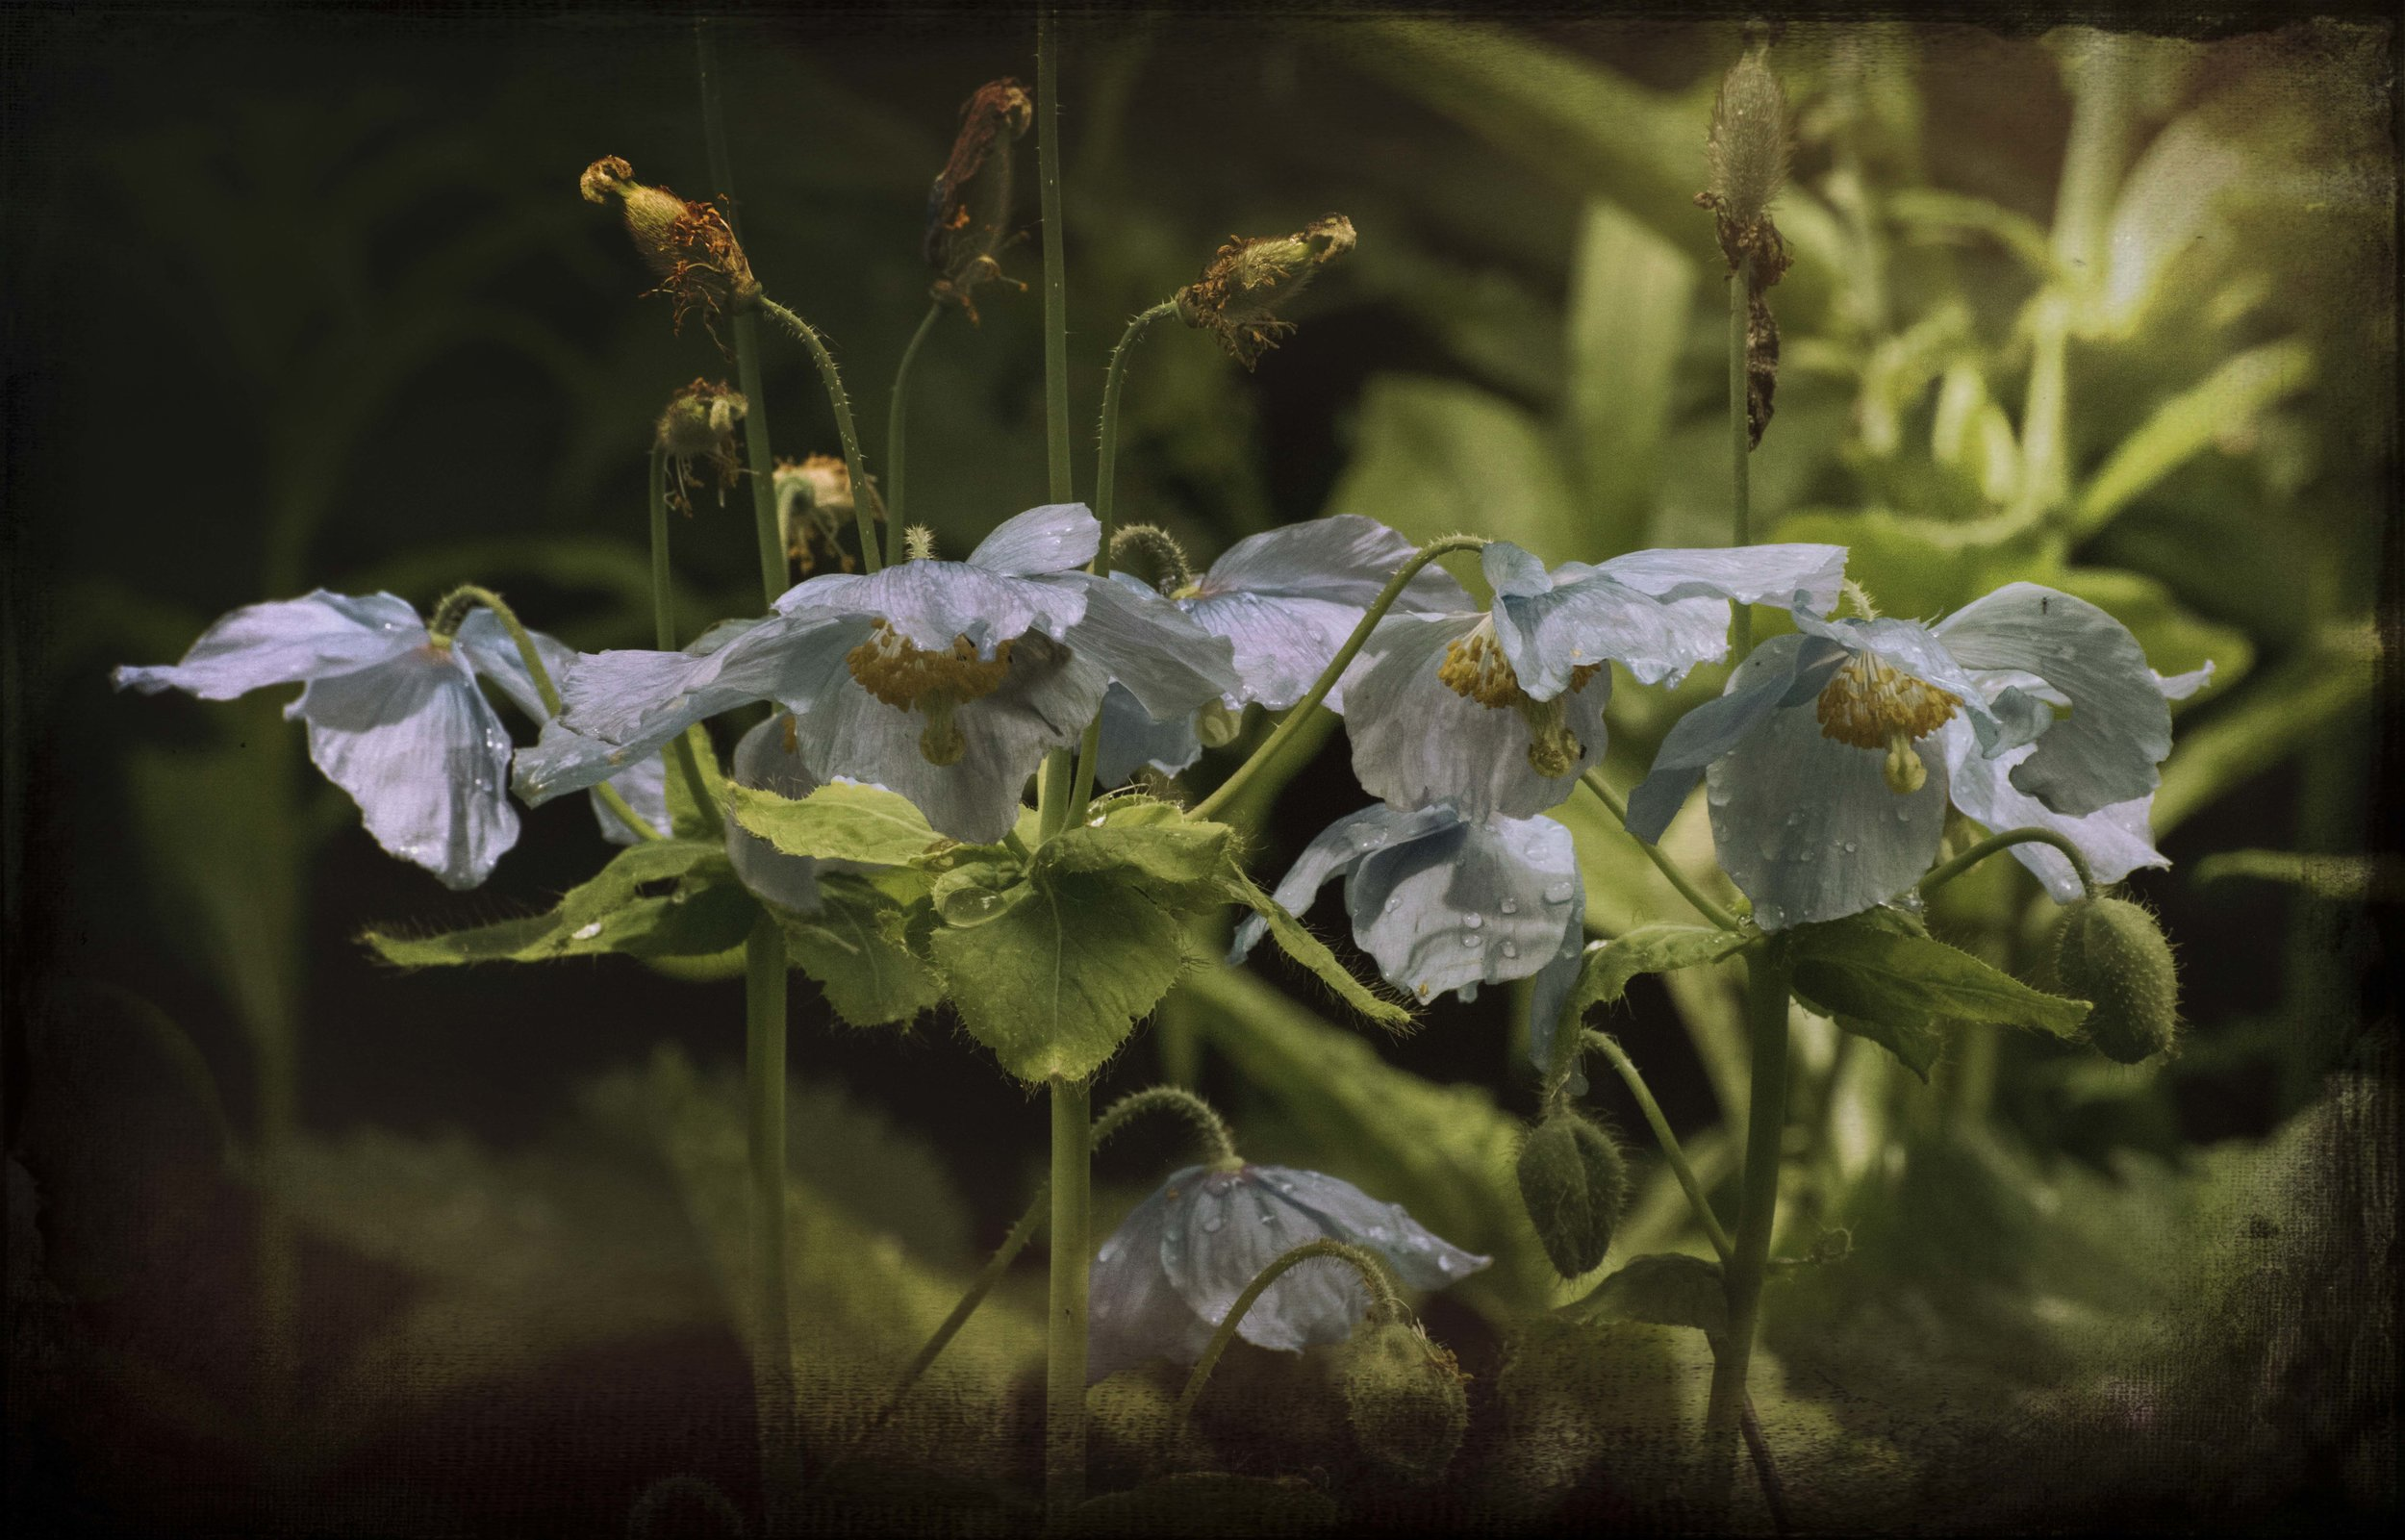 blue poppies in the rain photographed a few months ago